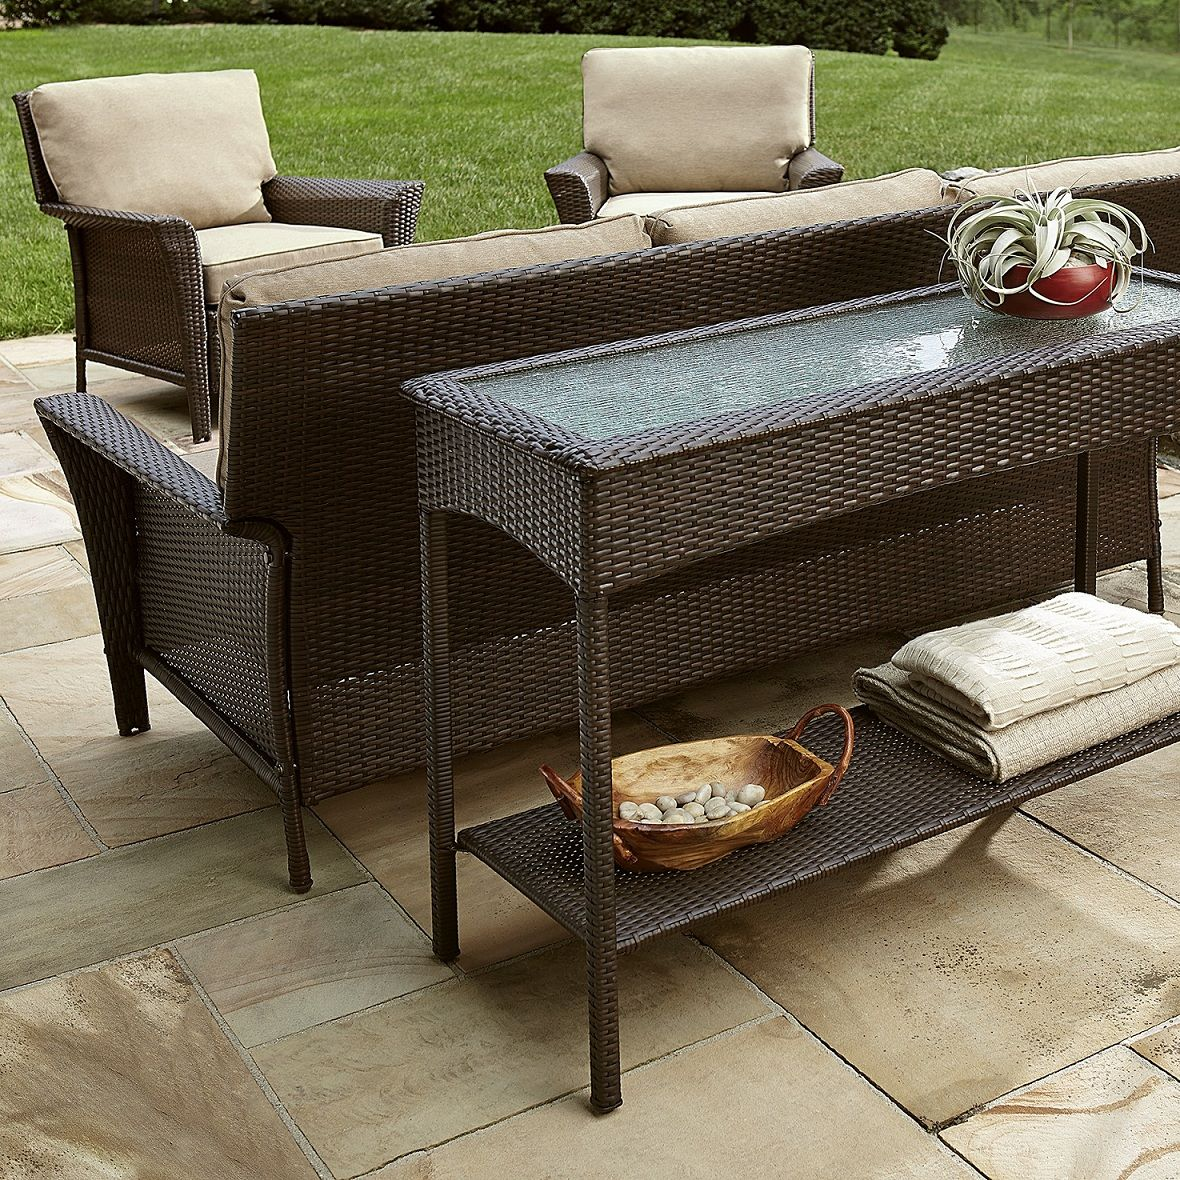 Outdoor Console Table Materials Hupehome Outdoor Console Table Console Table Outdoor Furniture